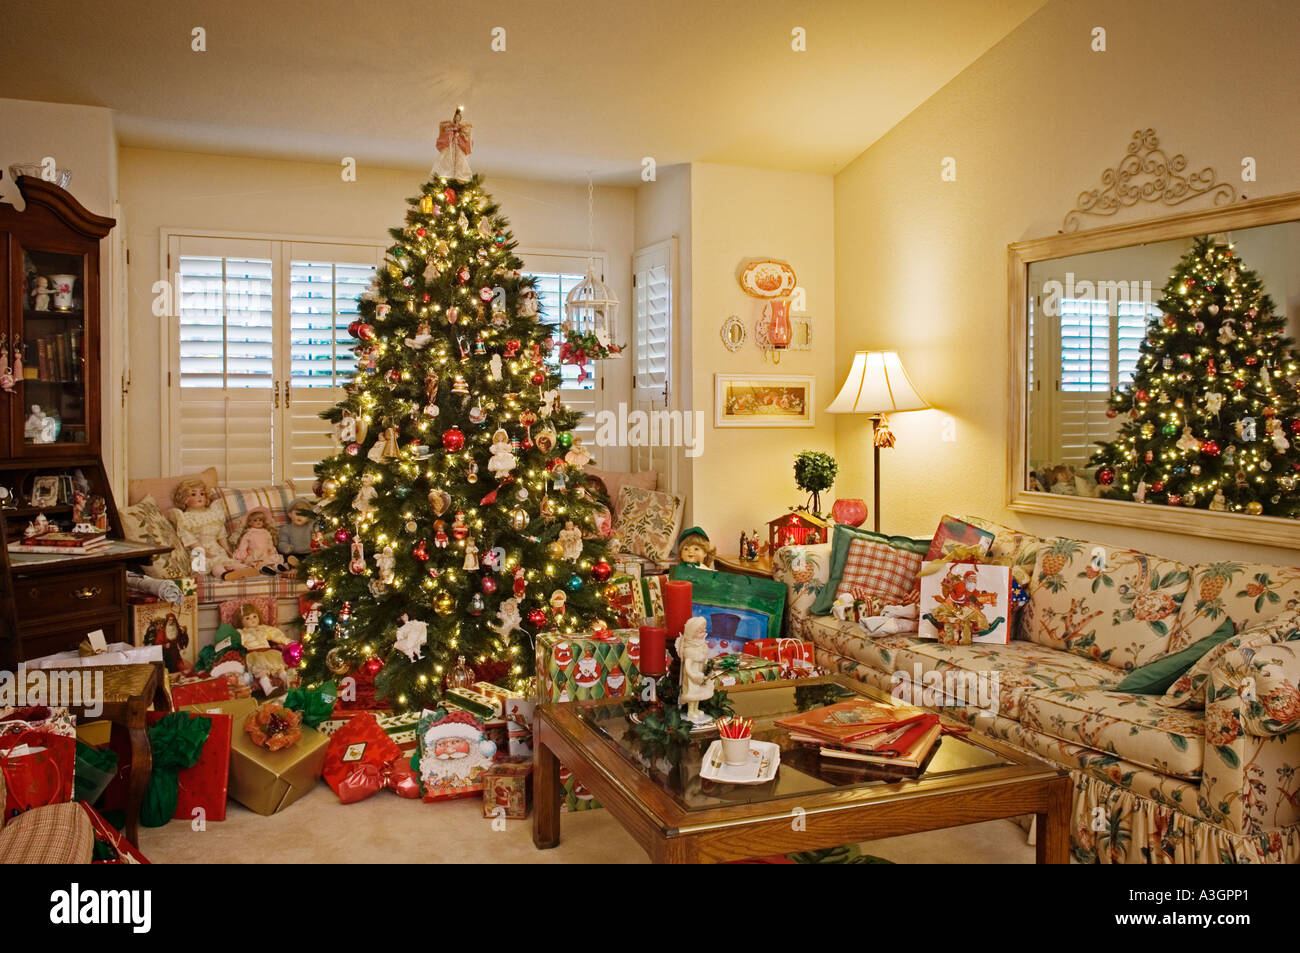 Christmas Tree In Living Room christmas tree decorations and gifts in living room of upscale